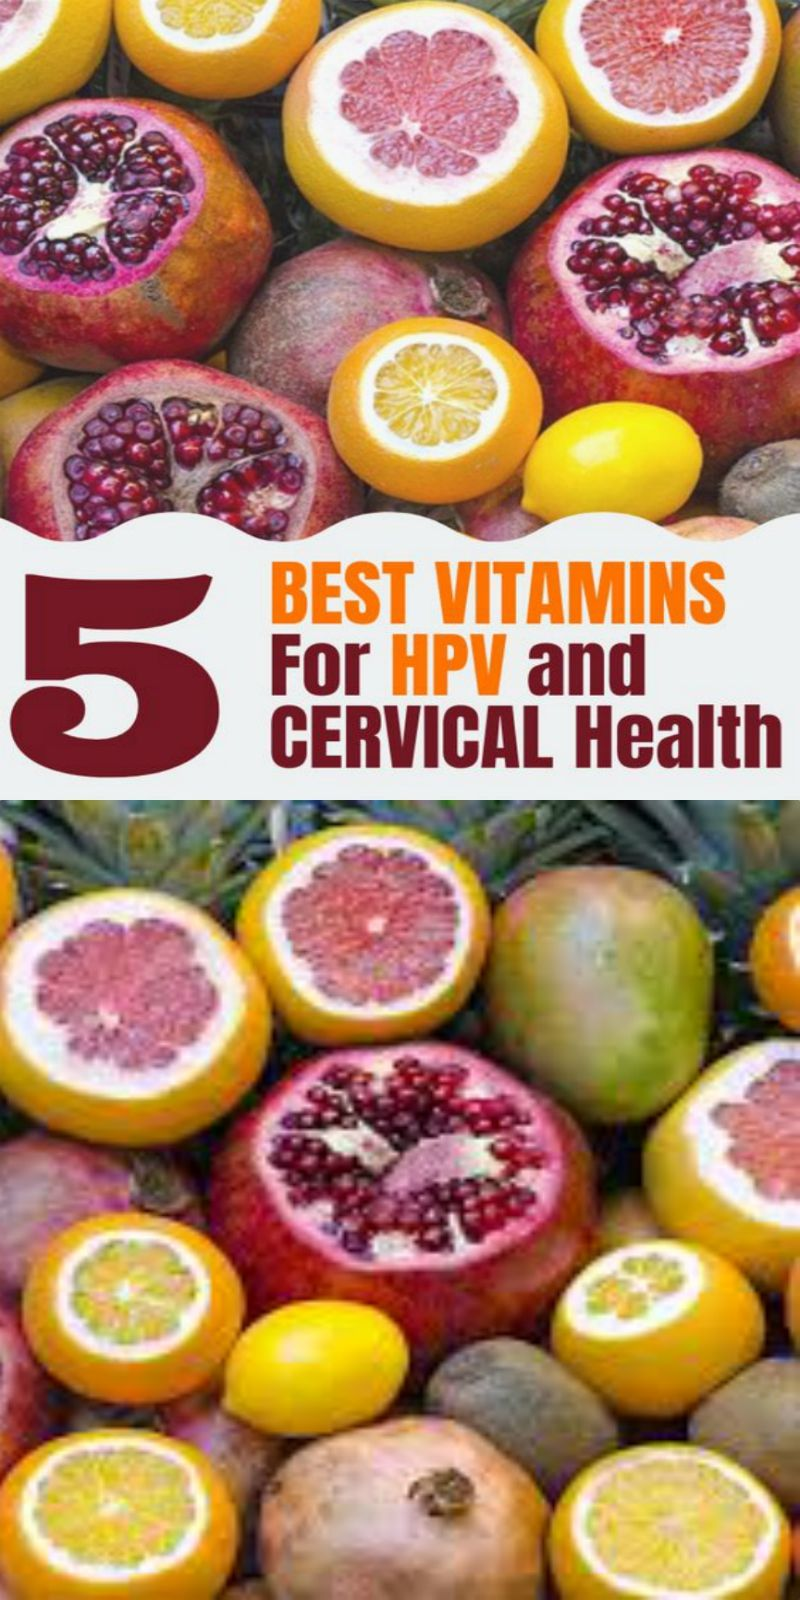 5 Best Vitamins Regimen for HPV and Cervical Dyspepsia as Natural